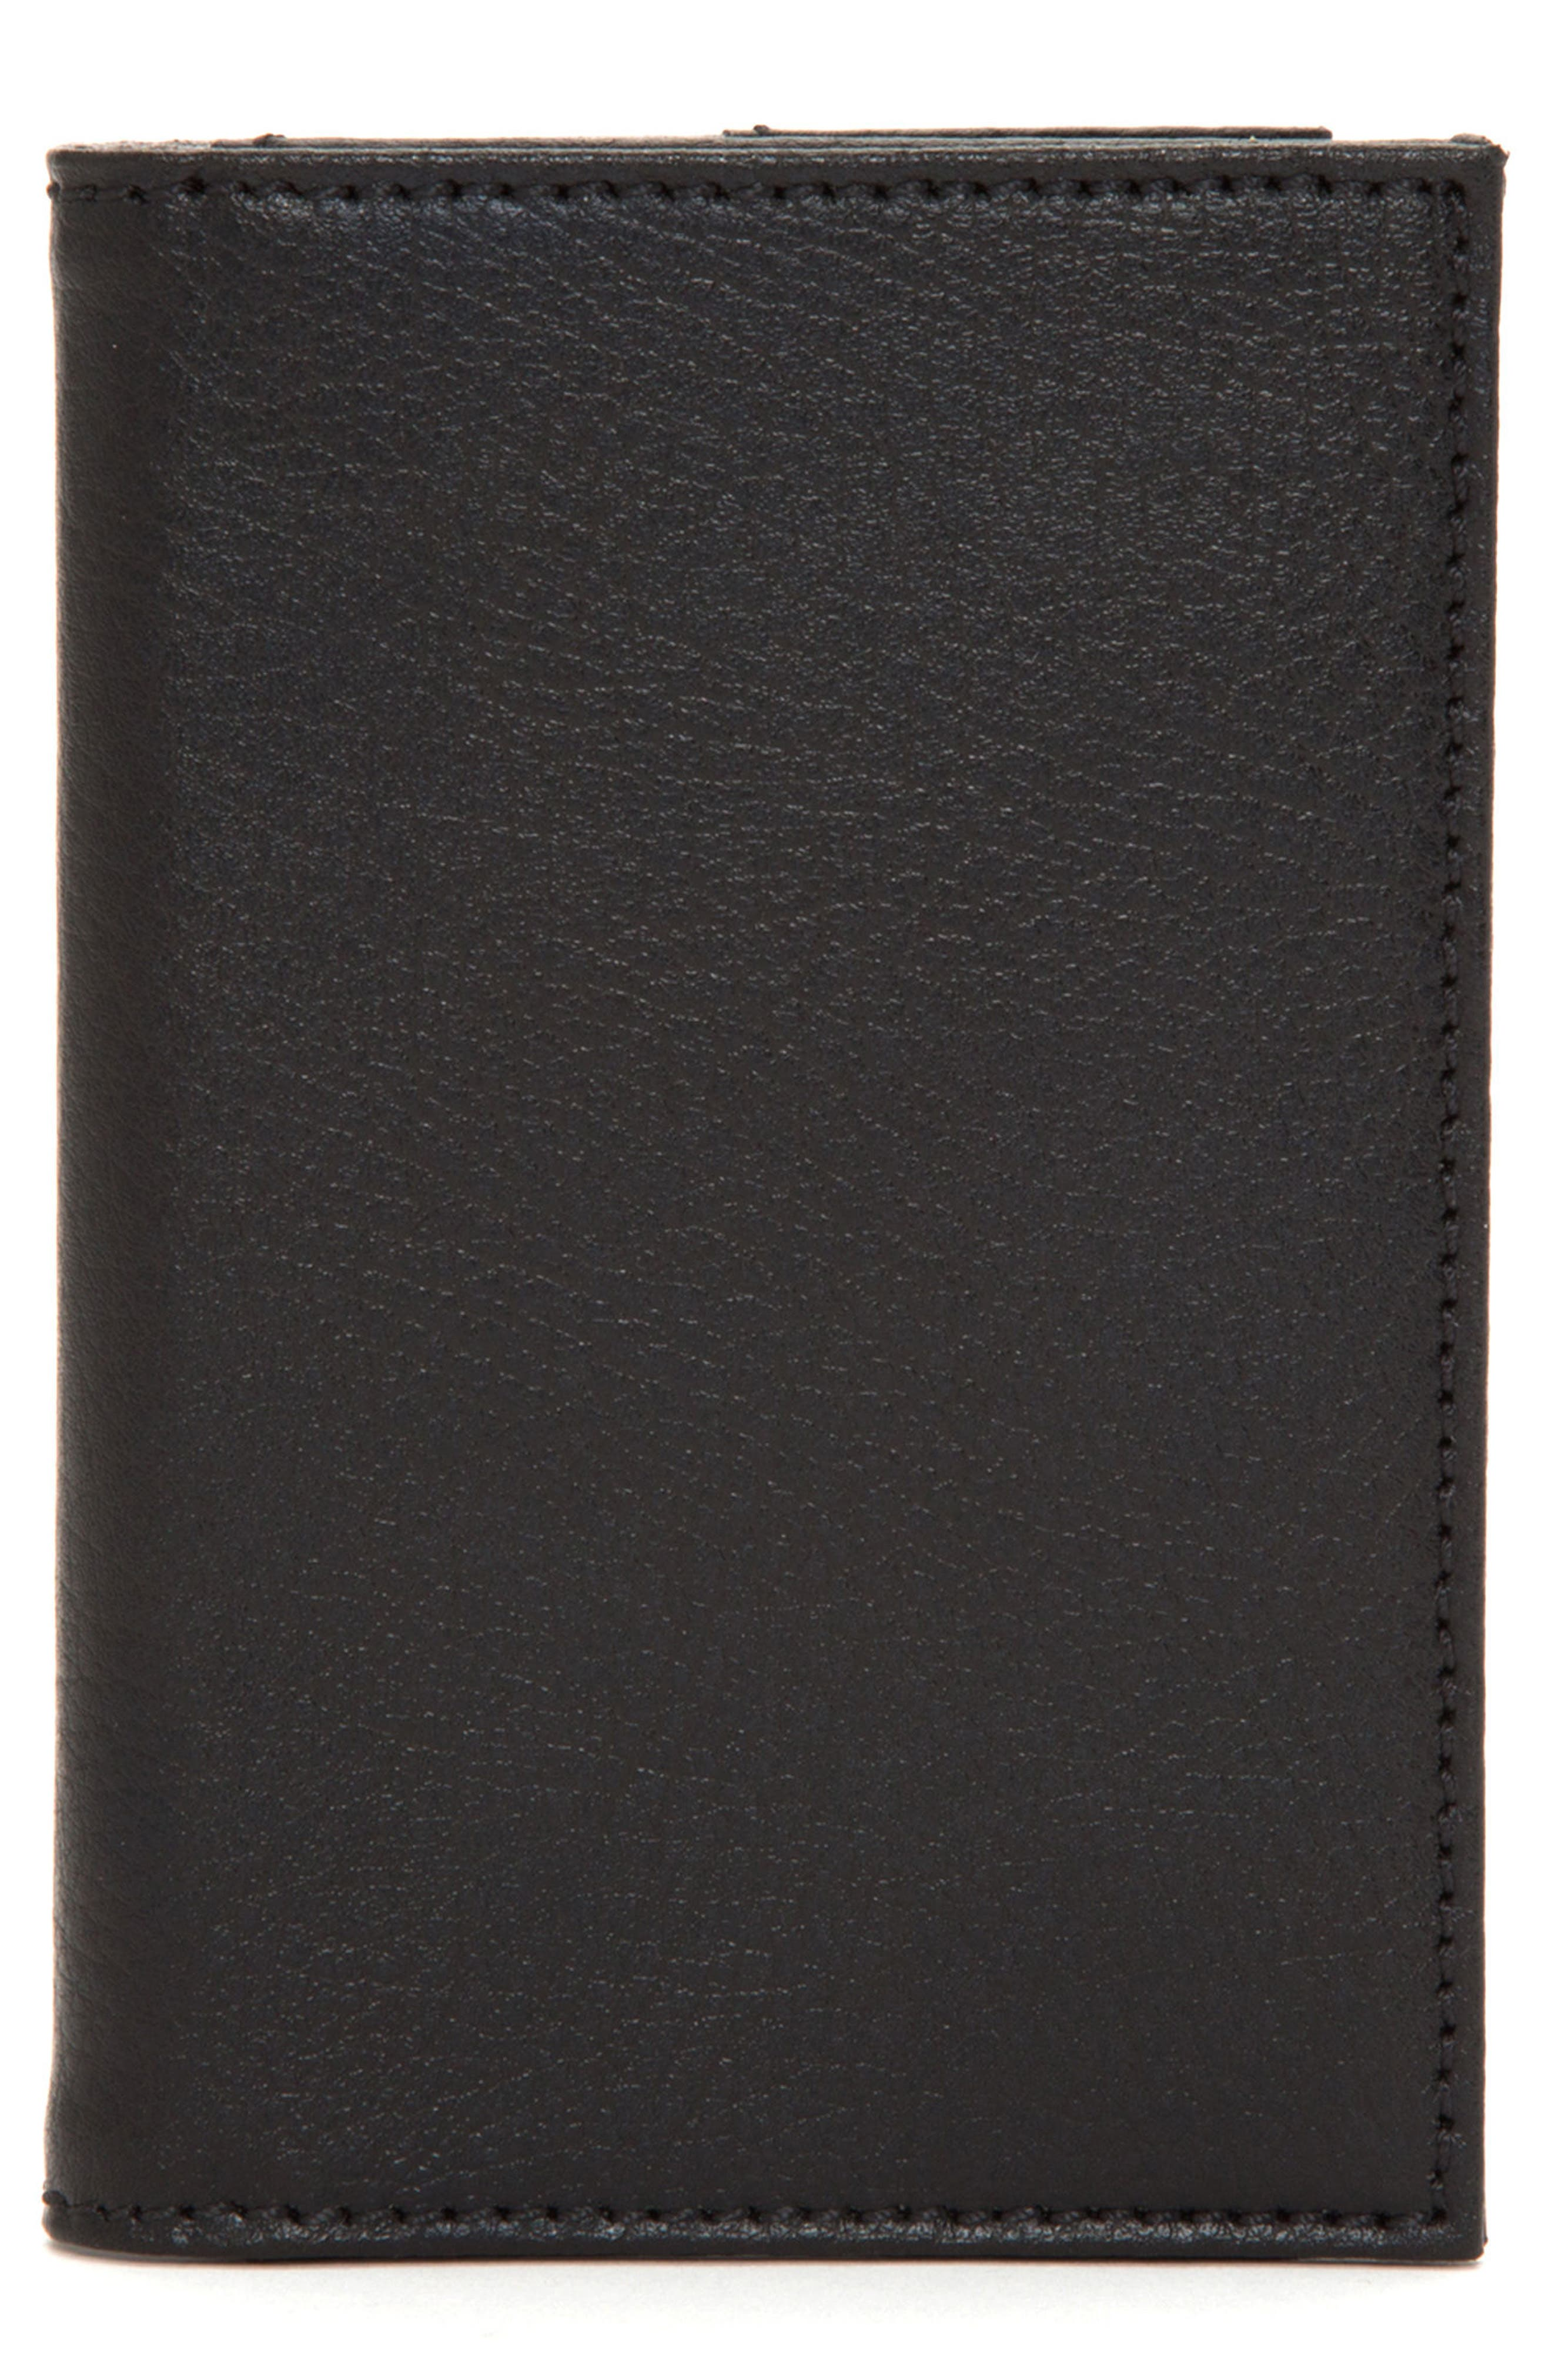 Howard Passport Case,                             Main thumbnail 1, color,                             BLACK